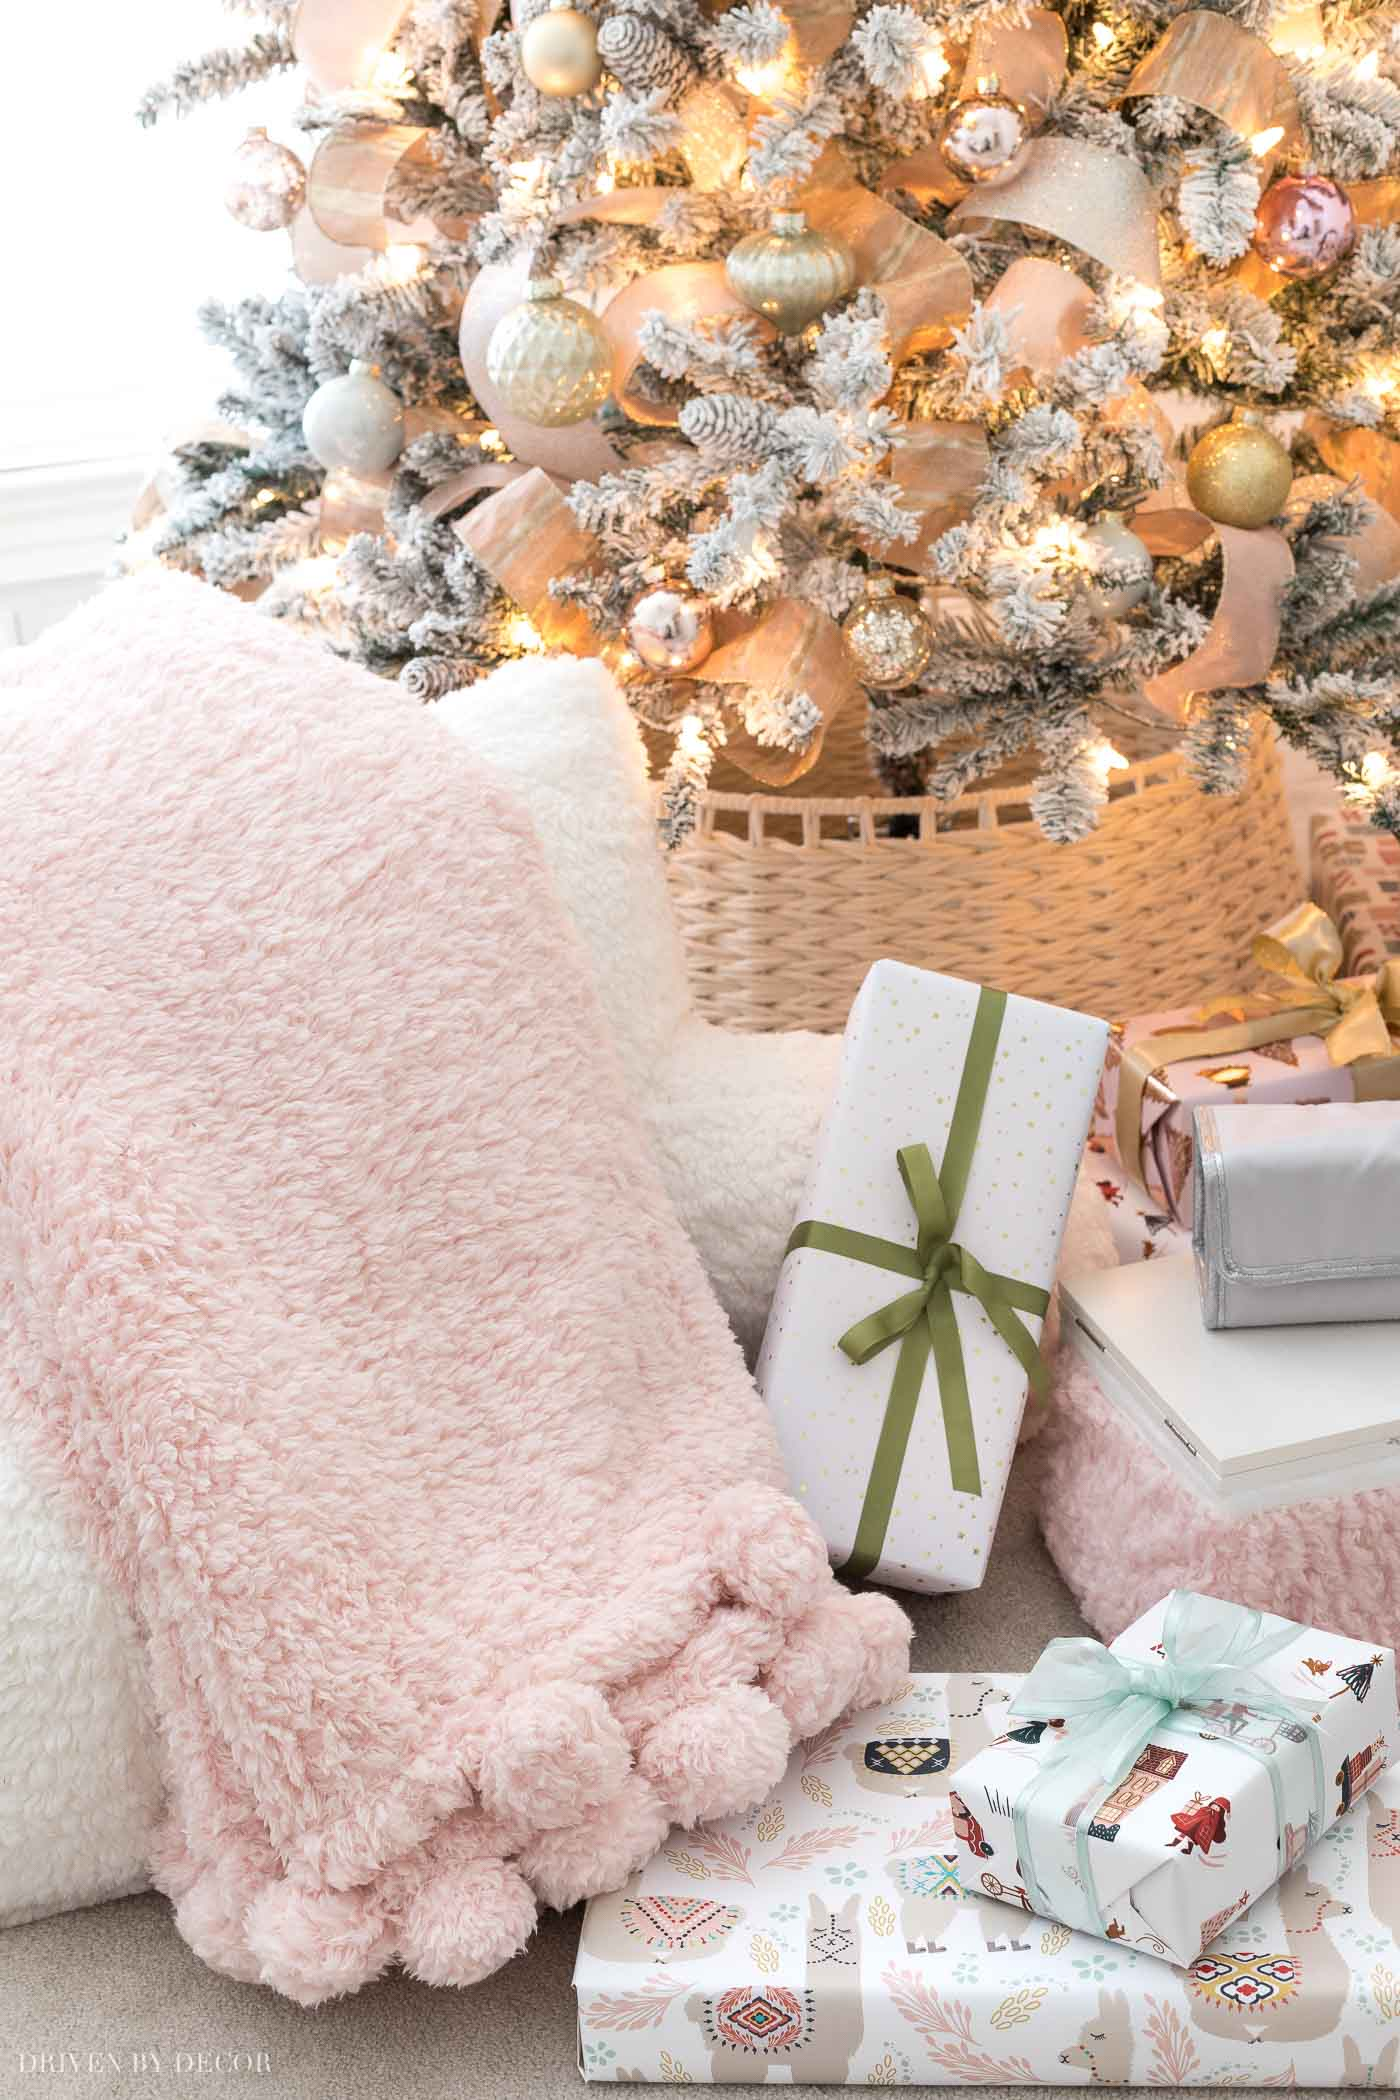 Super soft and cozy pom pom throw - one of the Christmas gift ideas for teen girls in this post!